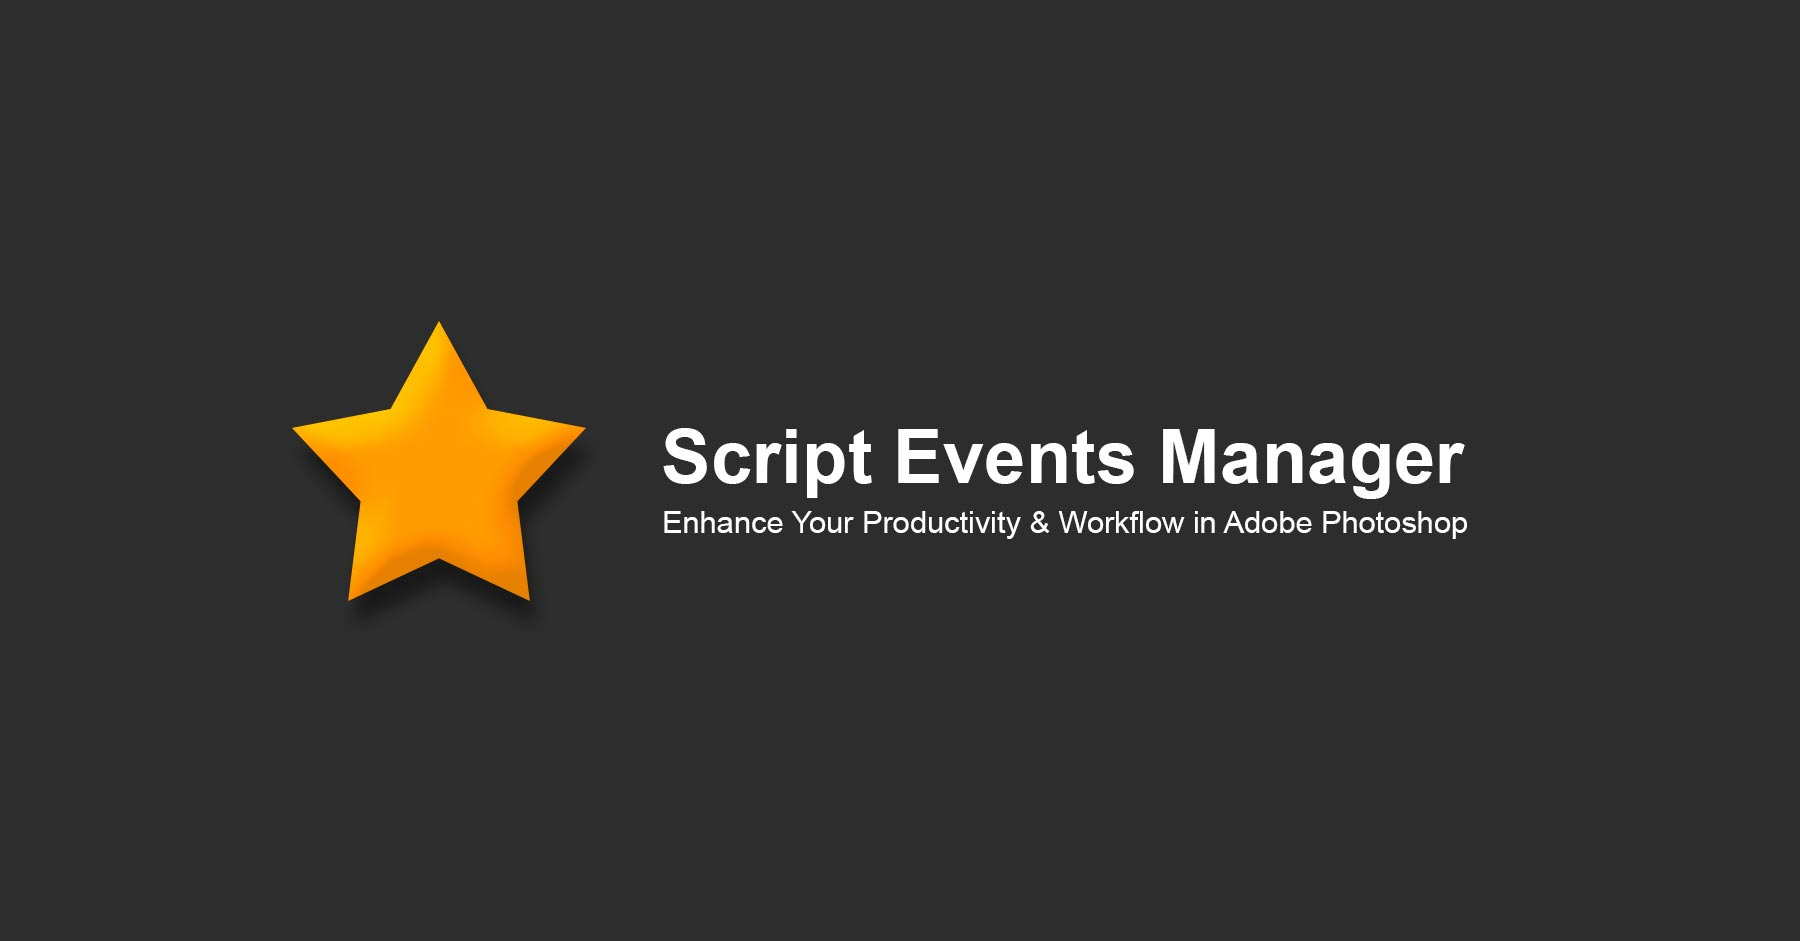 scripst-event-manager-photoshop